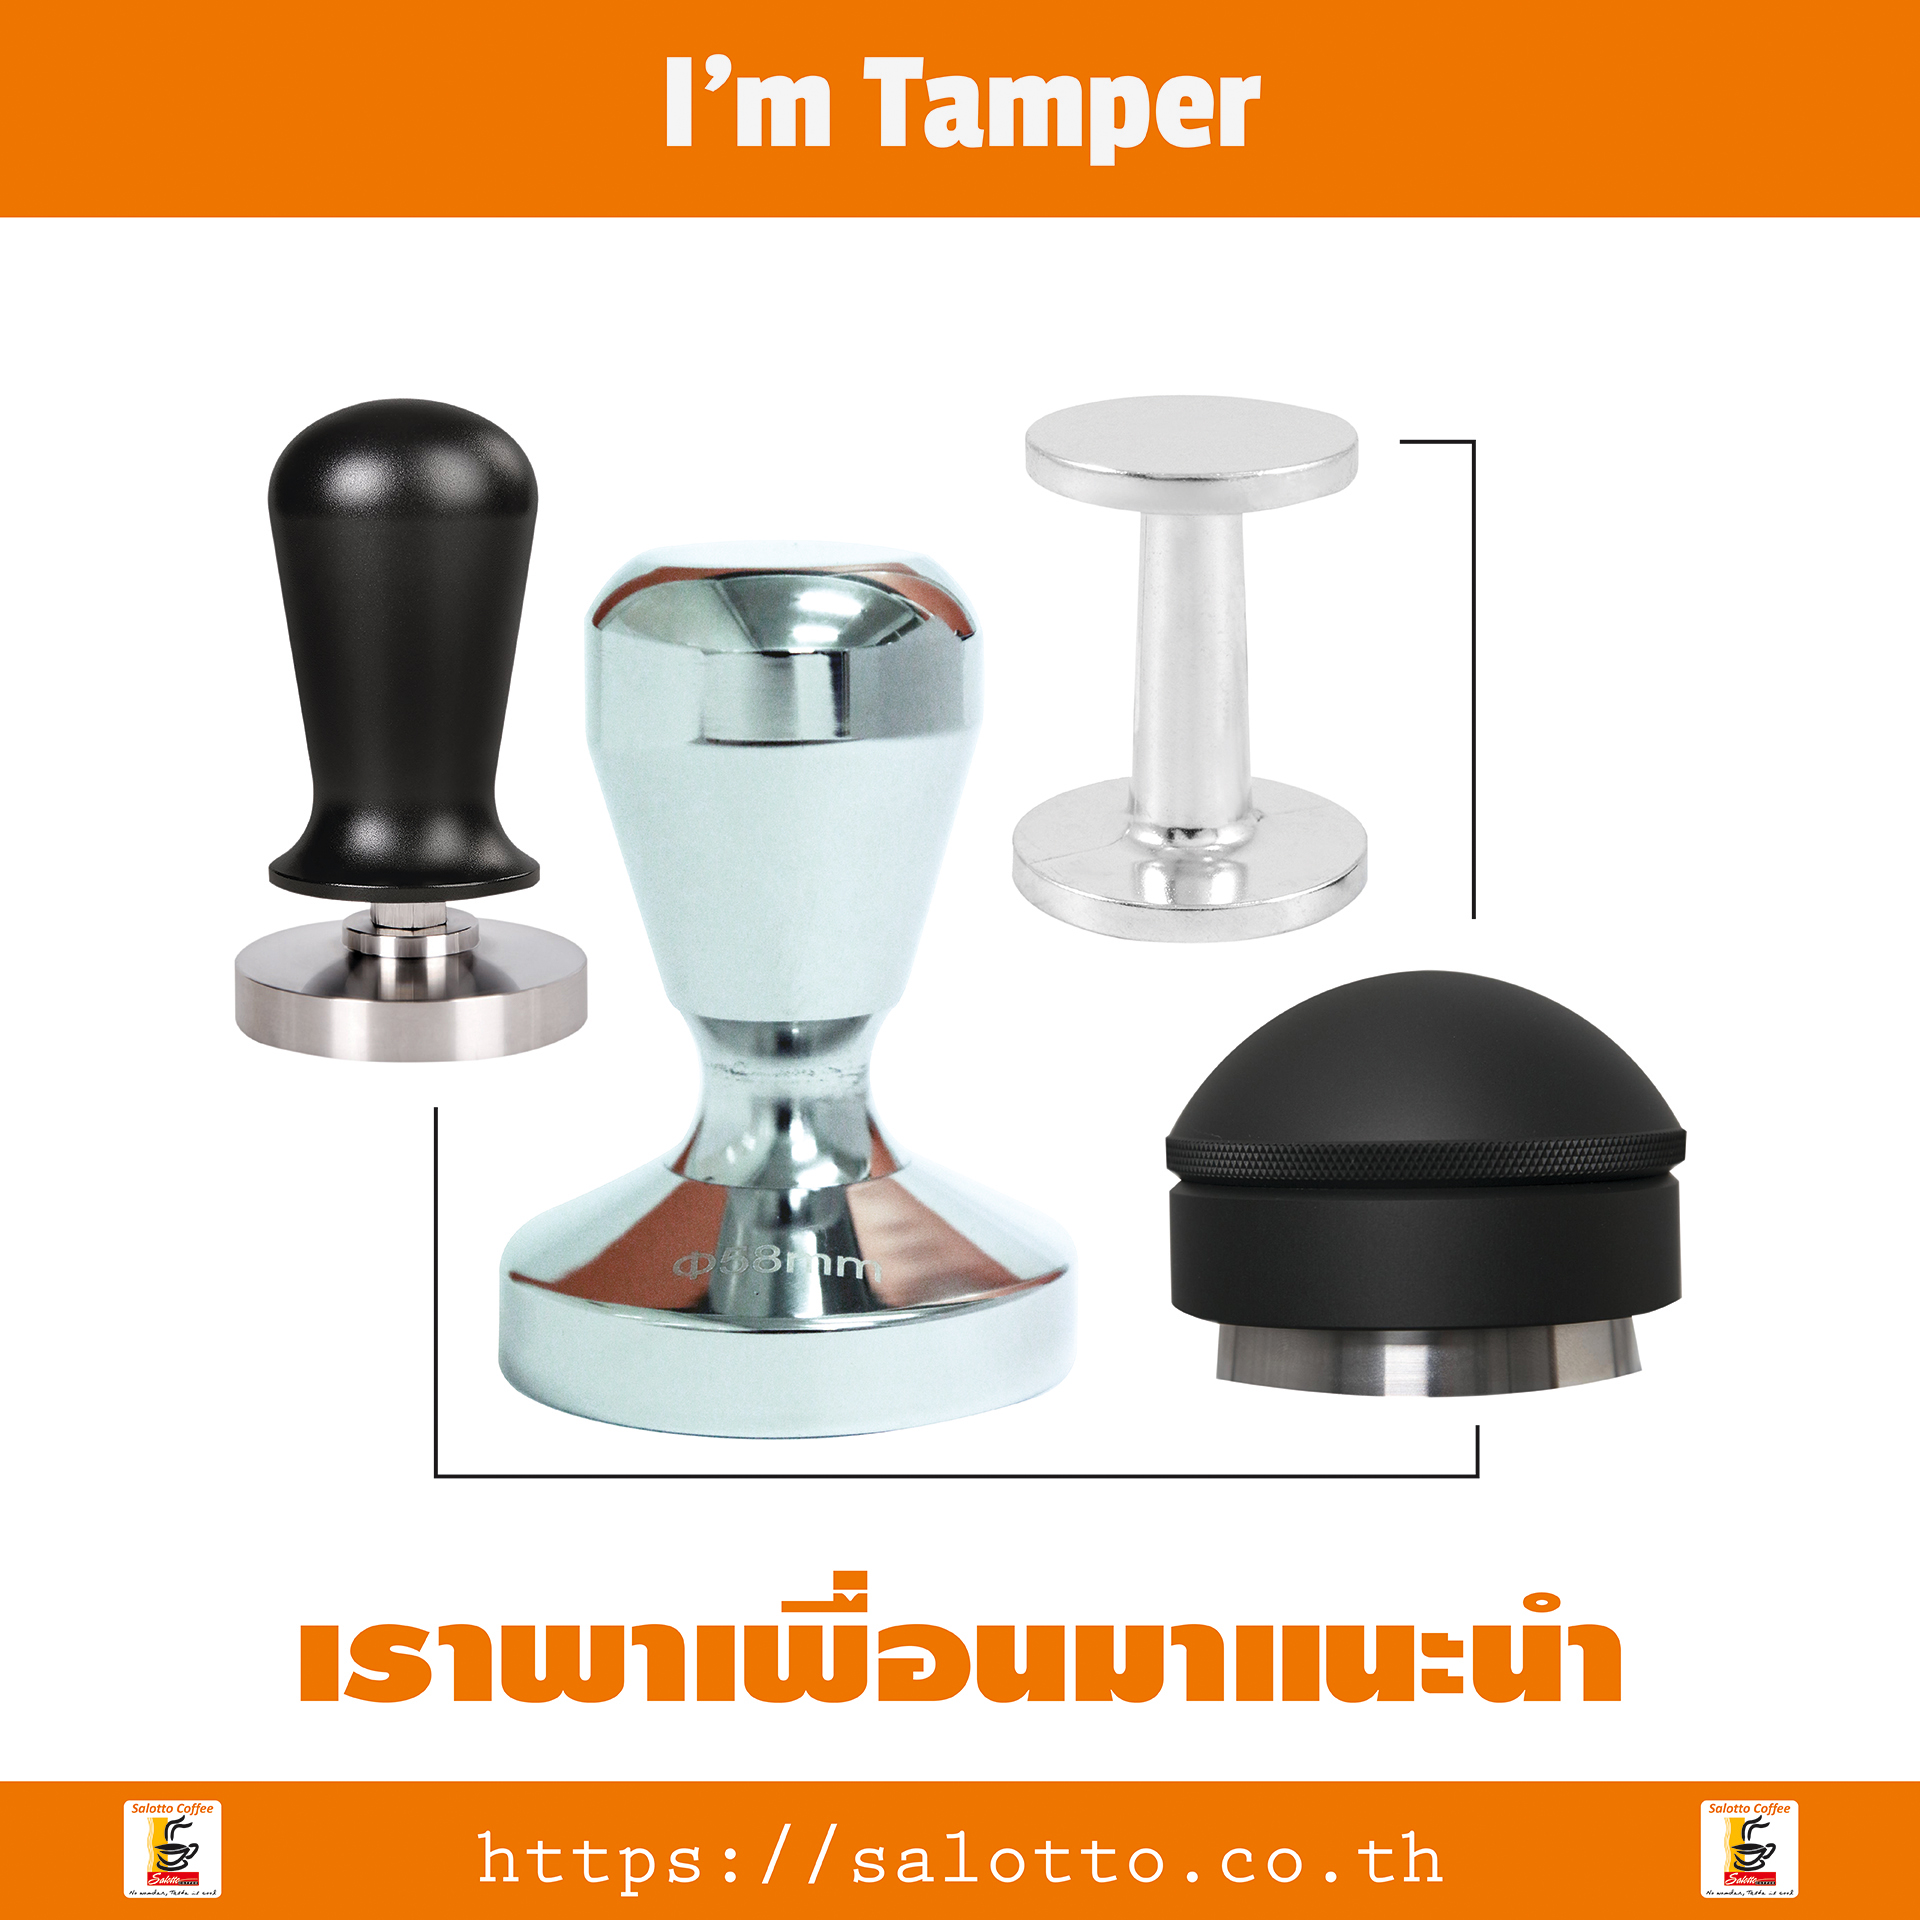 แทมป์เปอร์, Tamper, Tamp, Handle Tamper, Puck Tamper, Dual head Tamper, Calibrated Tamper, How to Tamp Coffee Correctly